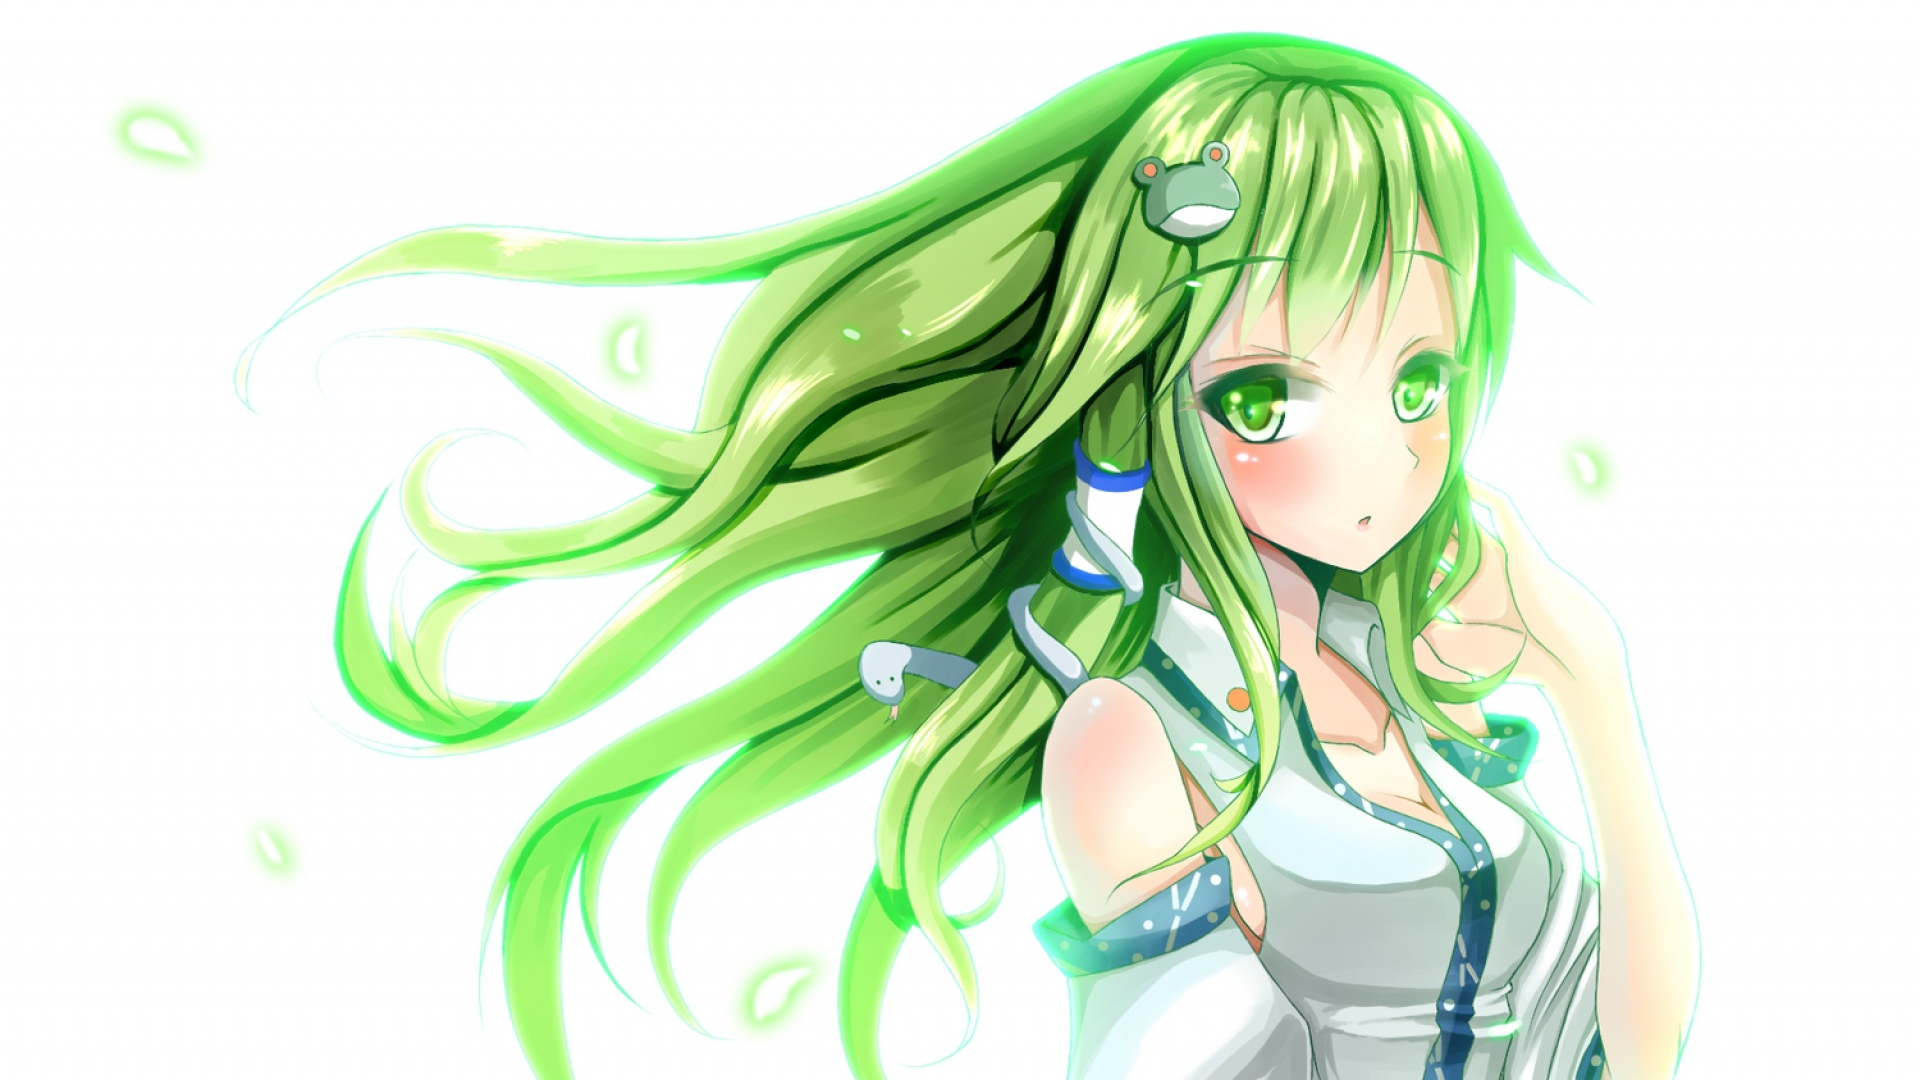 http://www.wallpapers4u.org/wp-content/uploads/atelier_yuu_kochiya_sanae_girl_green_eyes_green_hair_41764_1920x1080.jpg